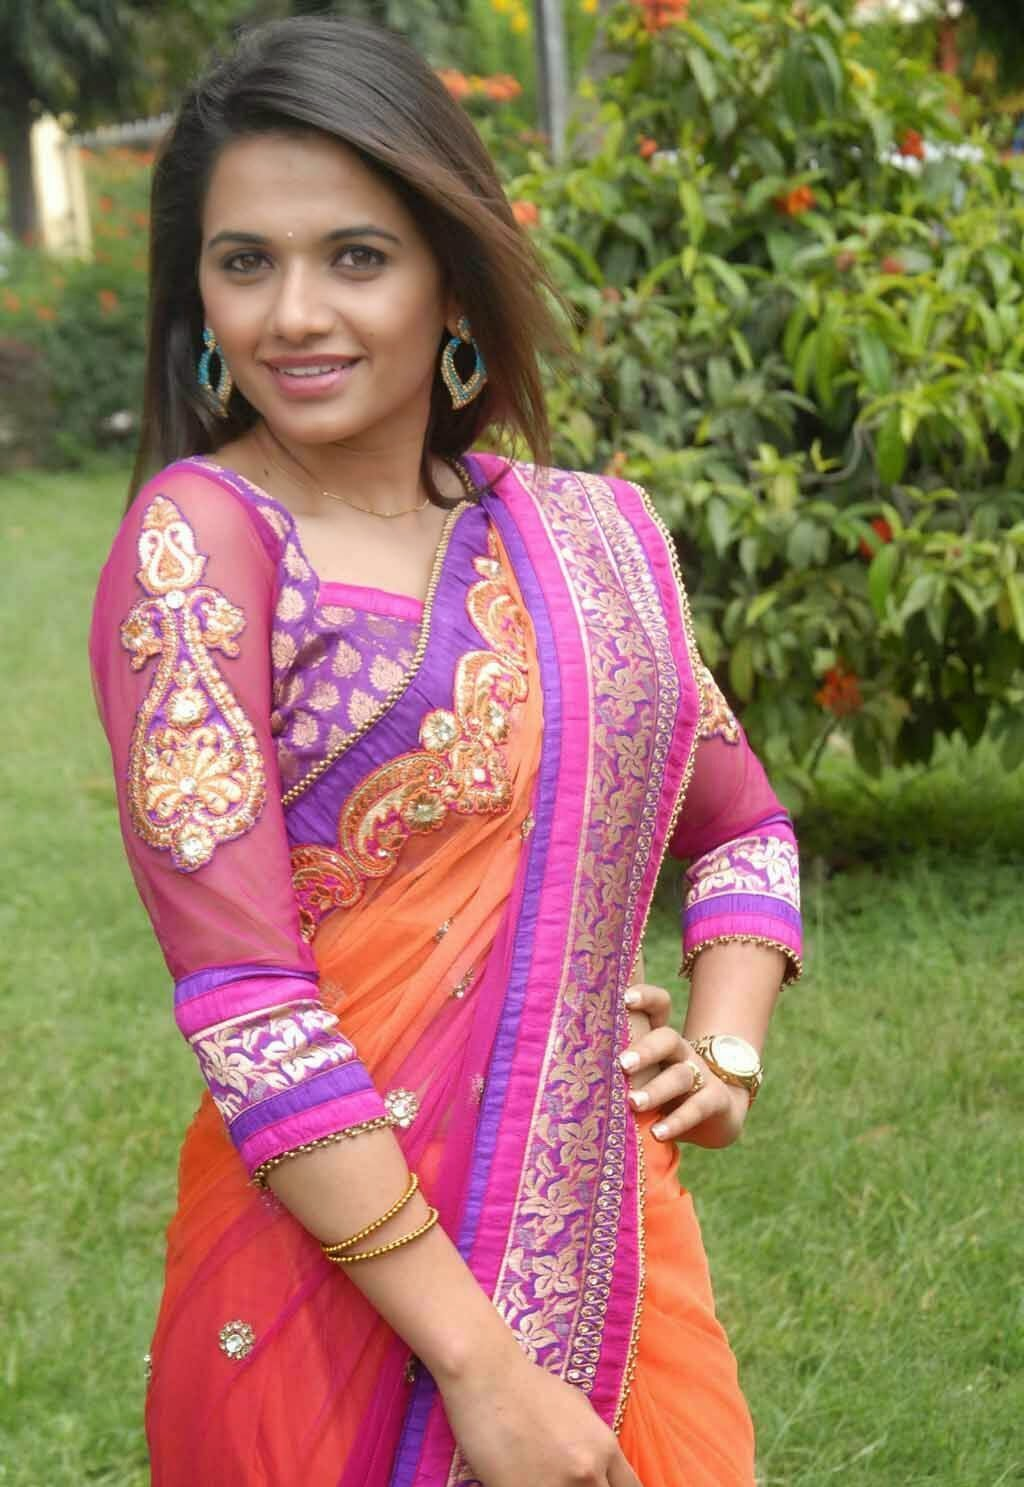 Bollywood, Tollywood, handsome, exotic, hot sexy Exotic Pavithra gowda photos looking gorgeous in ethnic saree collection, image gallery